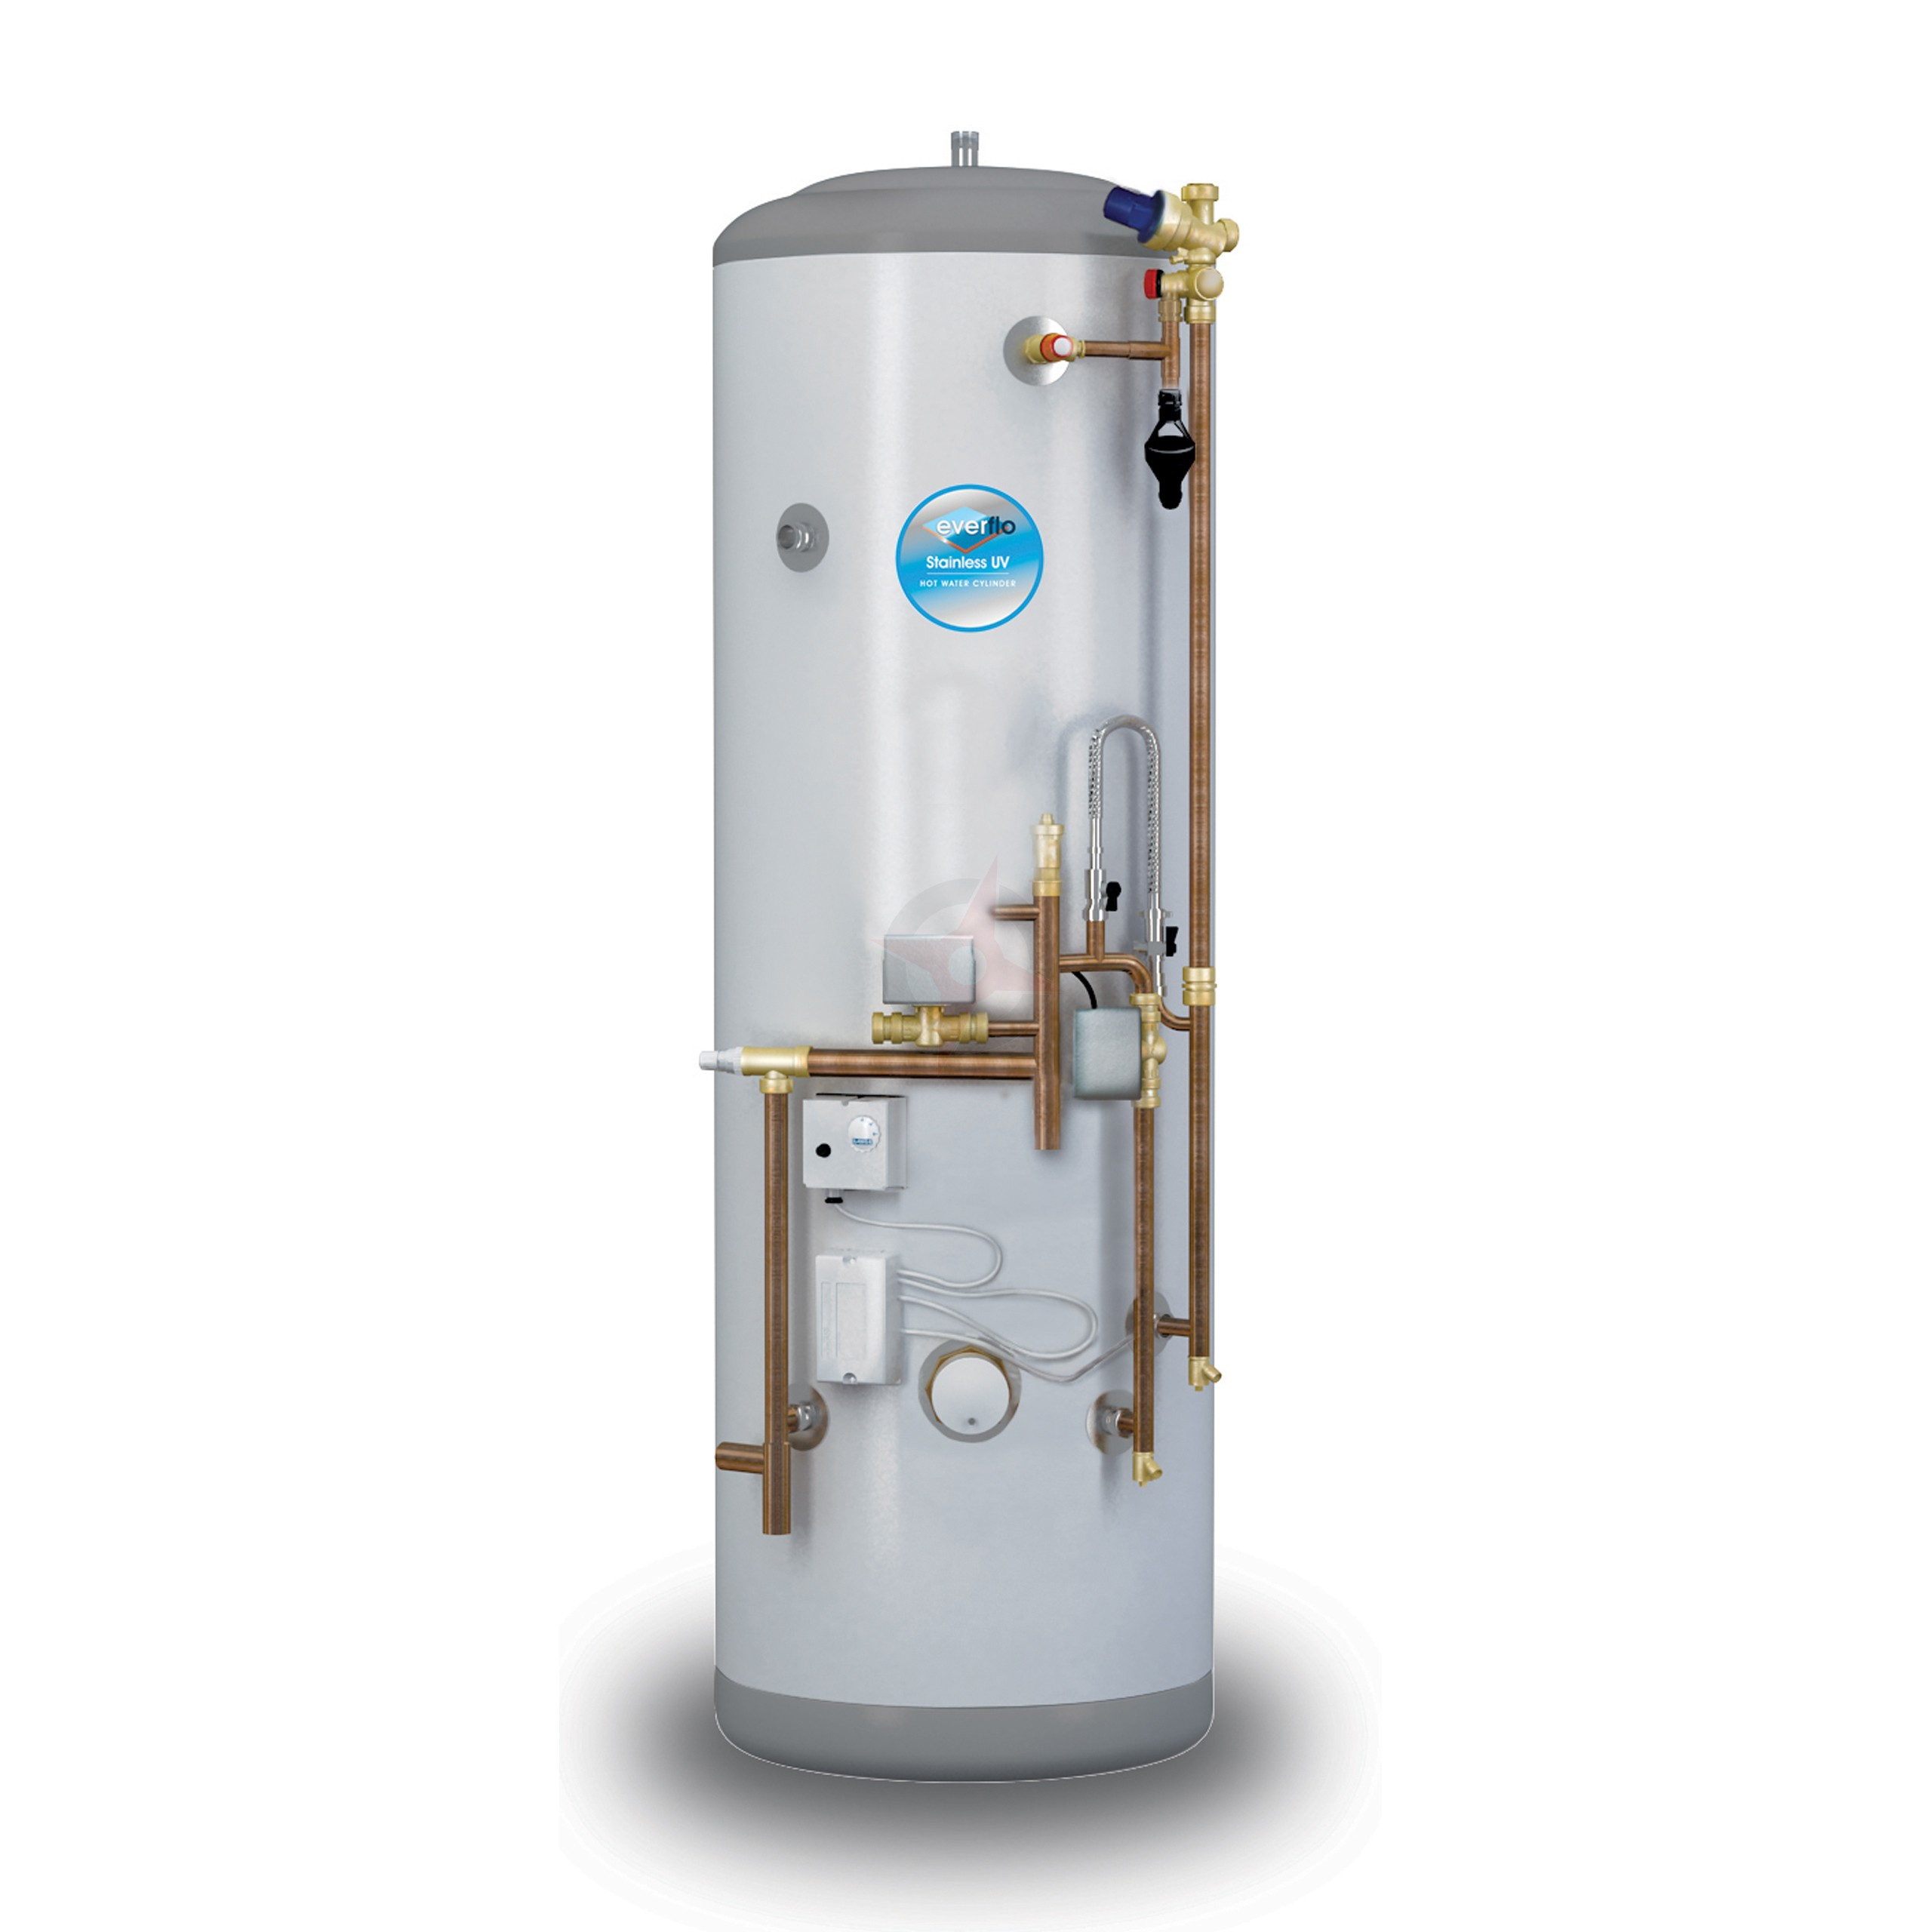 everflo Stainless 180L System Fit Unvented Hot Water Storage Cylinder